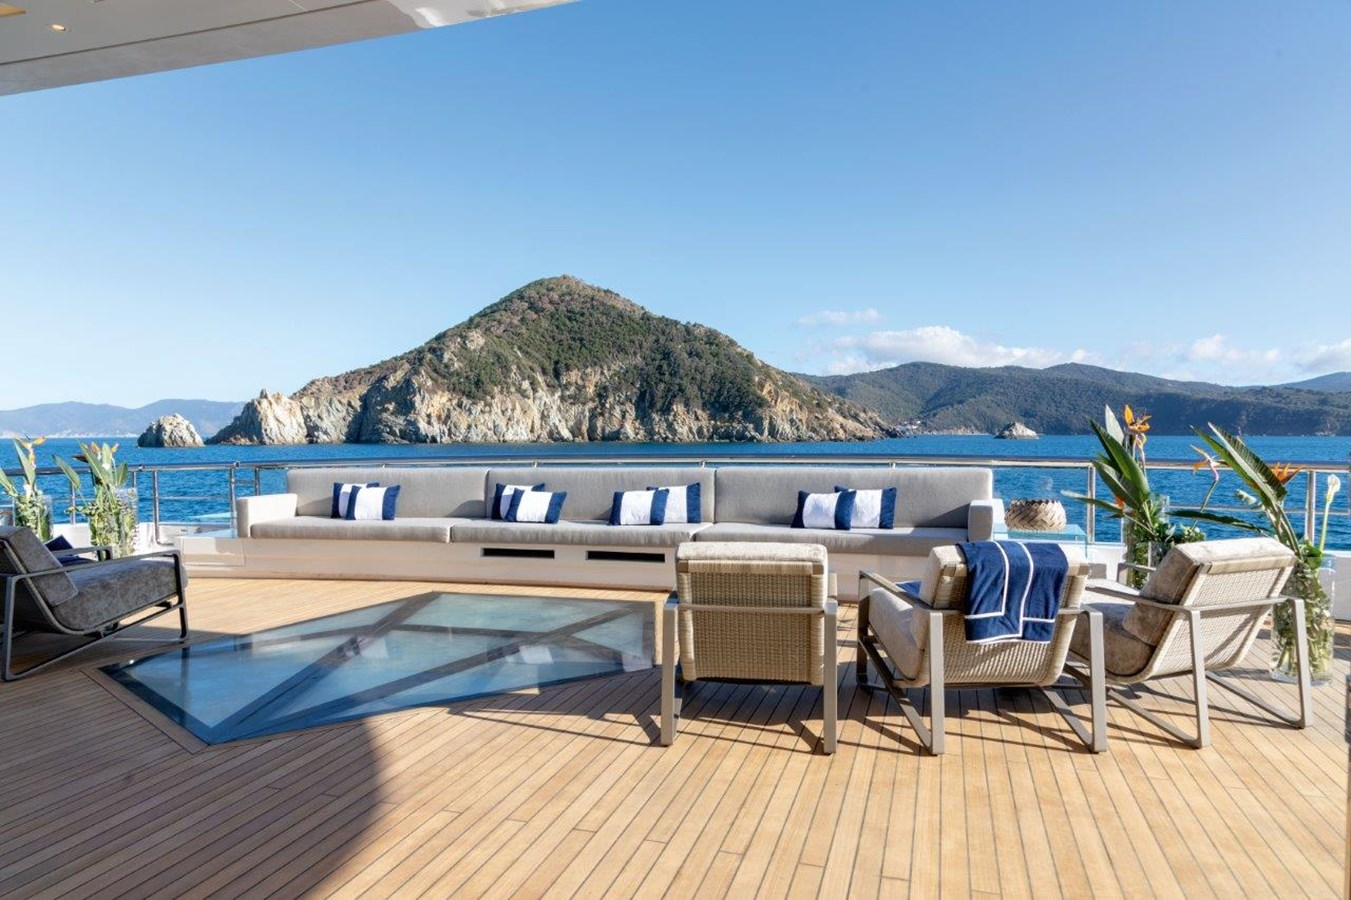 Aft Deck Lounging Area  2020 BENETTI Displacement Motor Yacht Motor Yacht 2918036